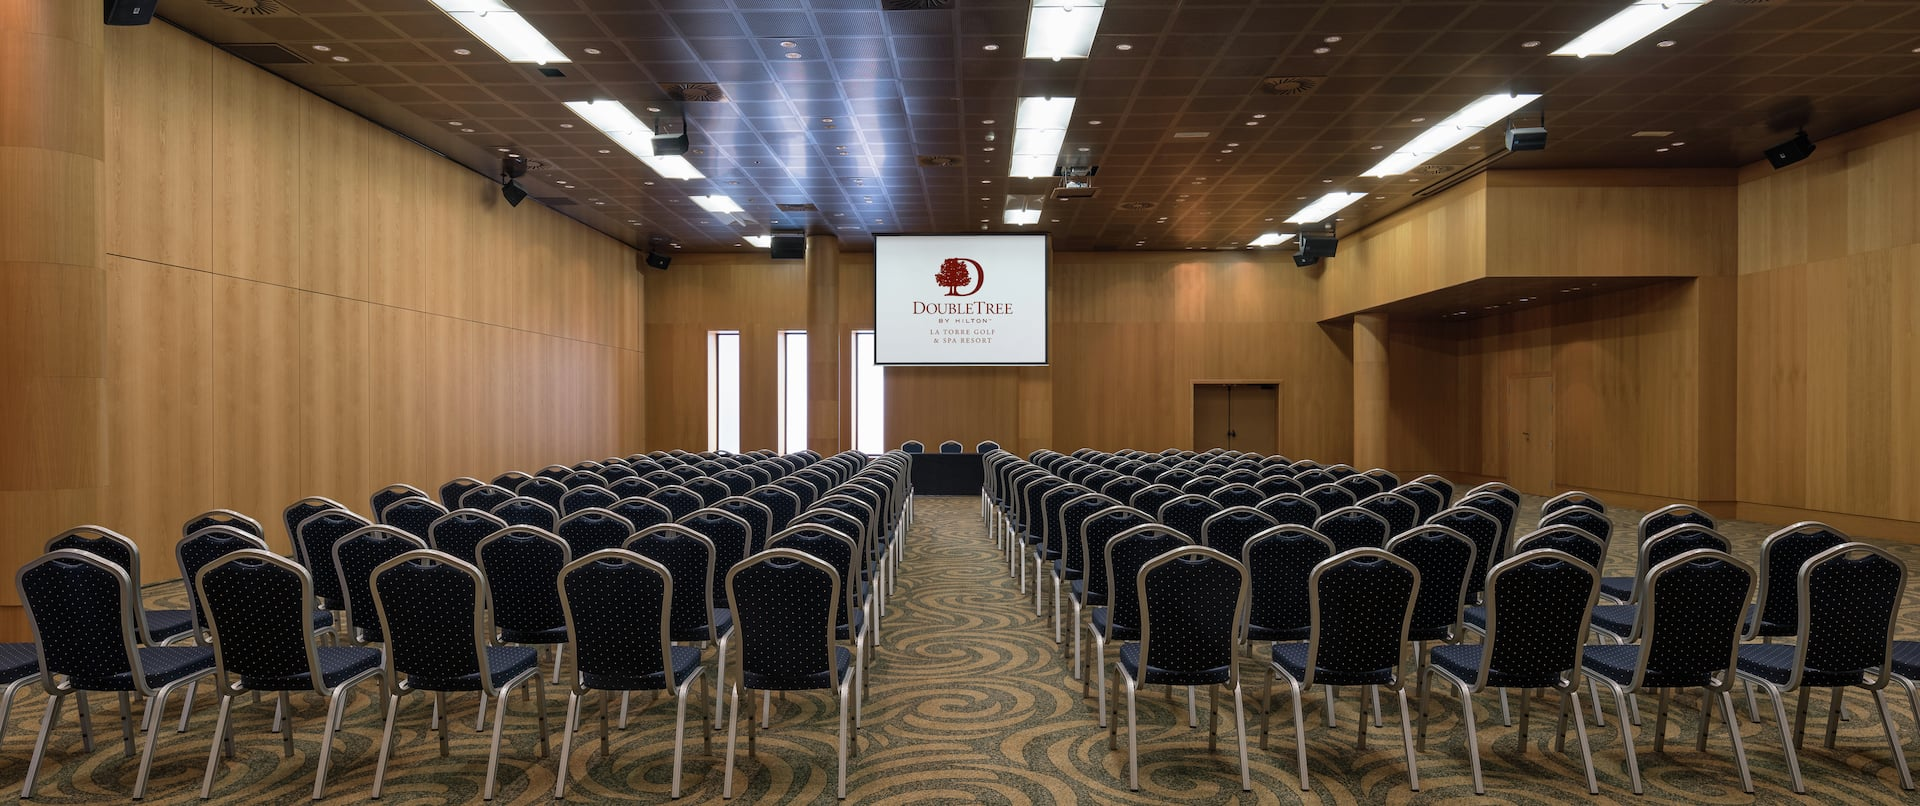 Hotel Theater Setting Meeting Room